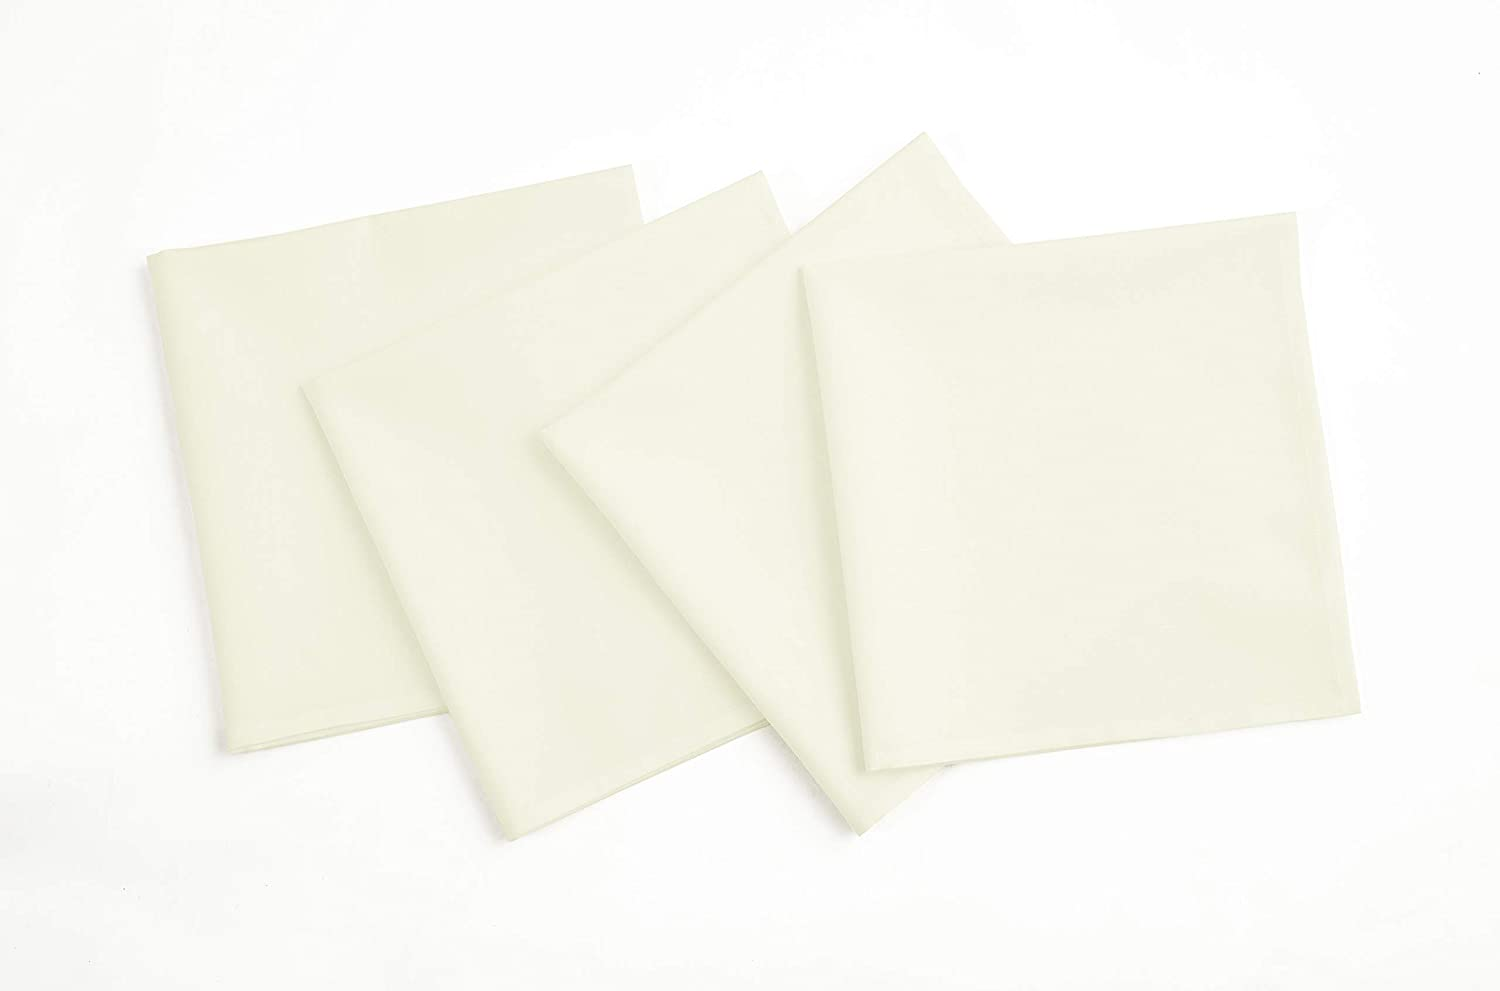 Solino Home Dru Cotton Linen Dinner Napkins – 20 x 20 Inch, Ivory Set of 4 Napkins, Natural Fabric – Machine Washable Handcrafted with Mitered Corners